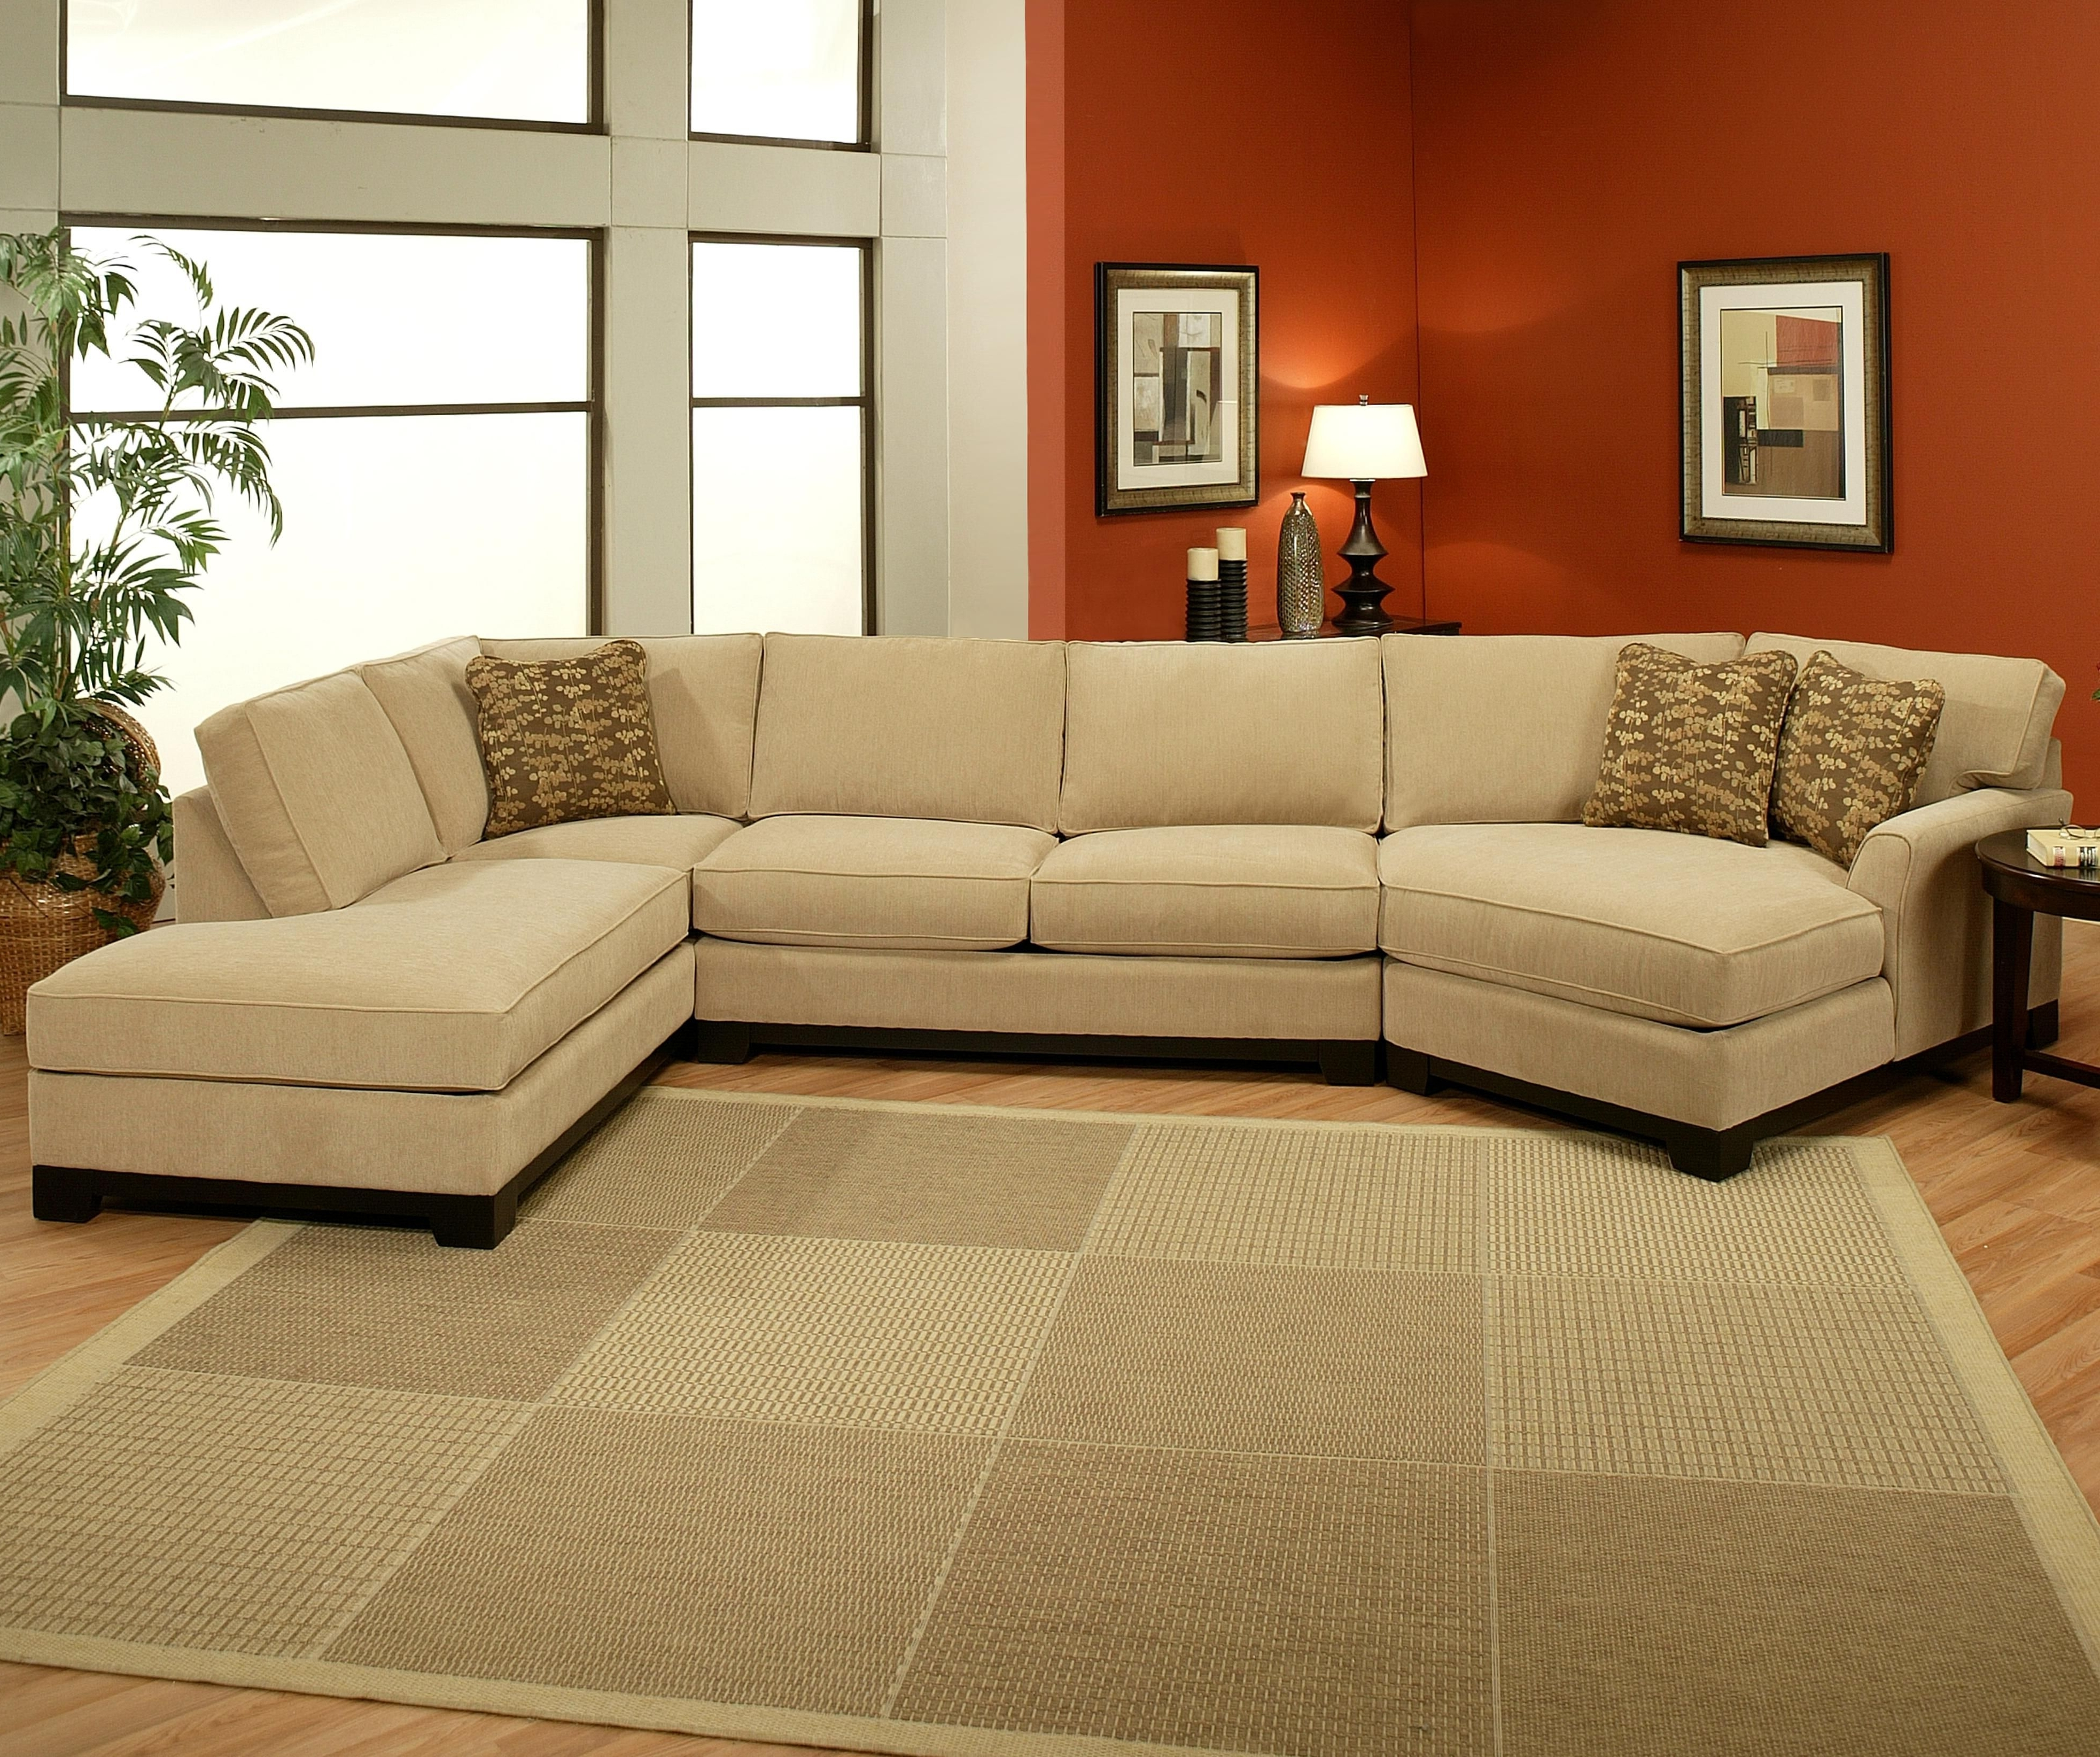 Dayton Ohio Sectional Sofas Within Preferred Sagittarius 3 Pc. Sectionaljonathan Louis This Is A Flip Of (Gallery 16 of 20)